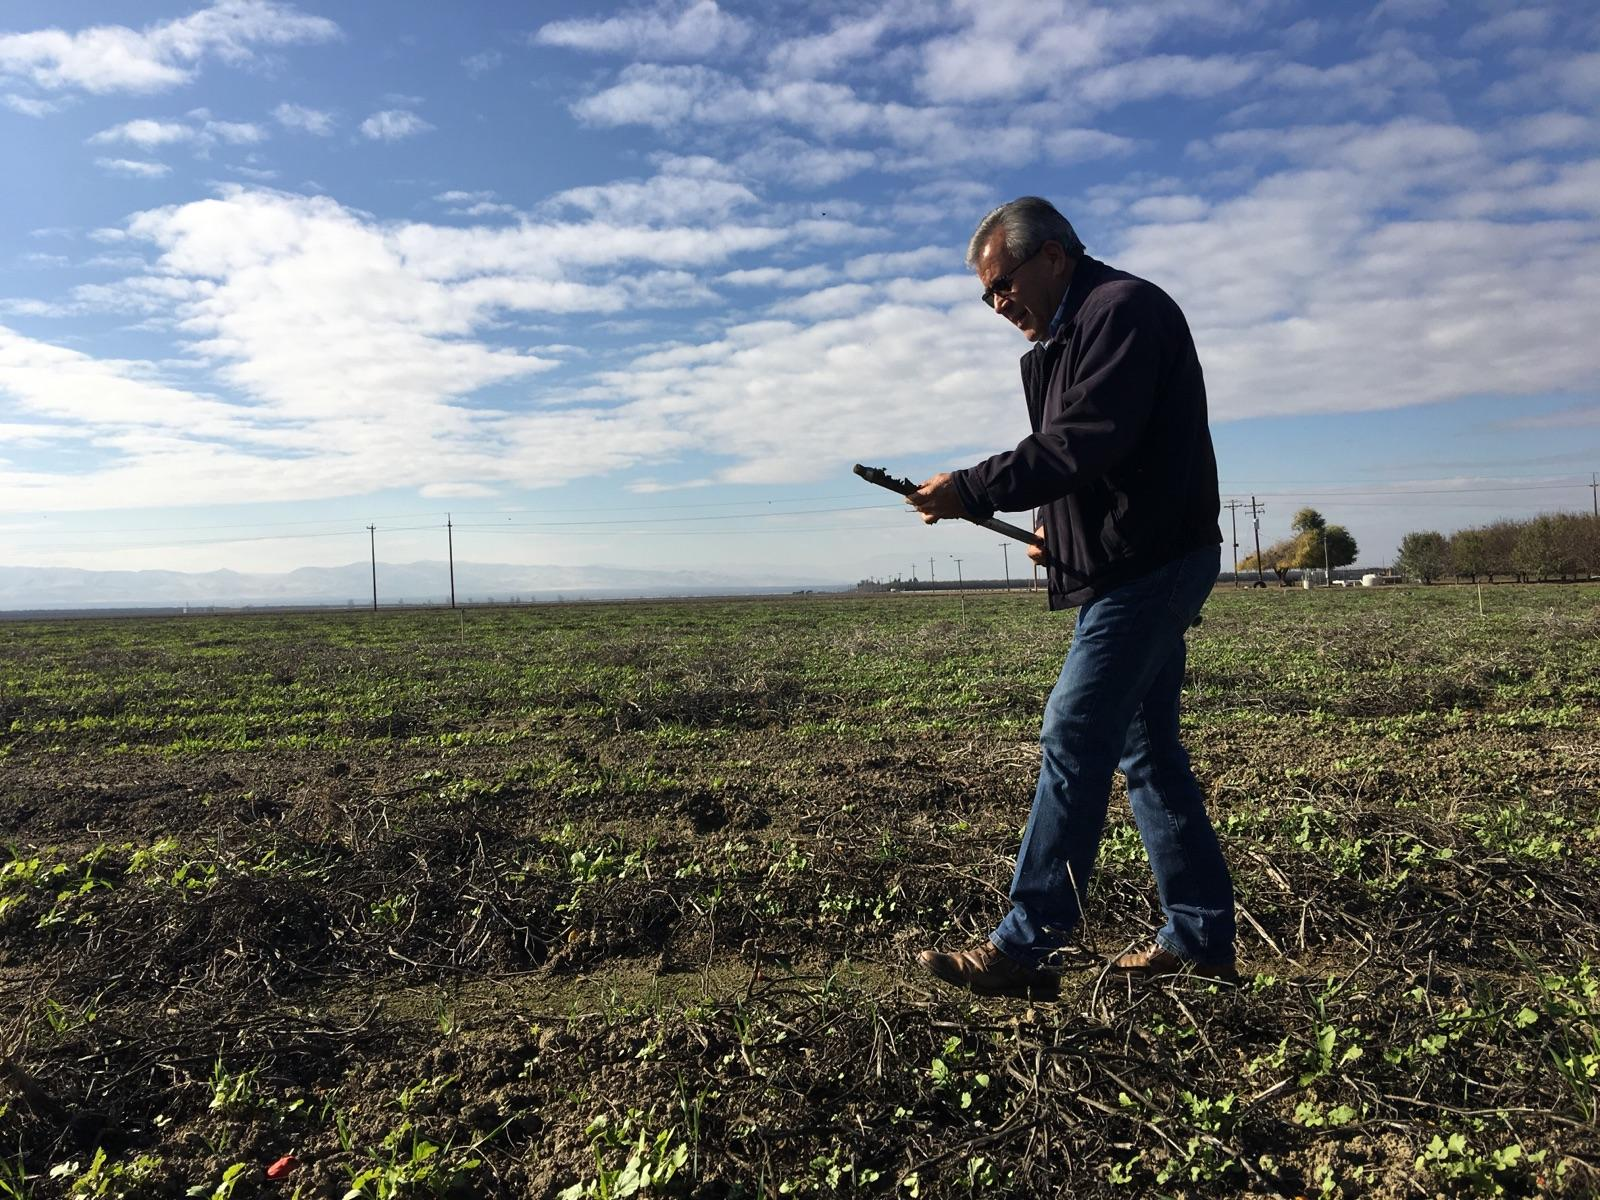 Jesse Sanhez uses cover crops among other techniques to keep the soil on his farm healthy. (Ezra David Romero/Valley Public Radio)